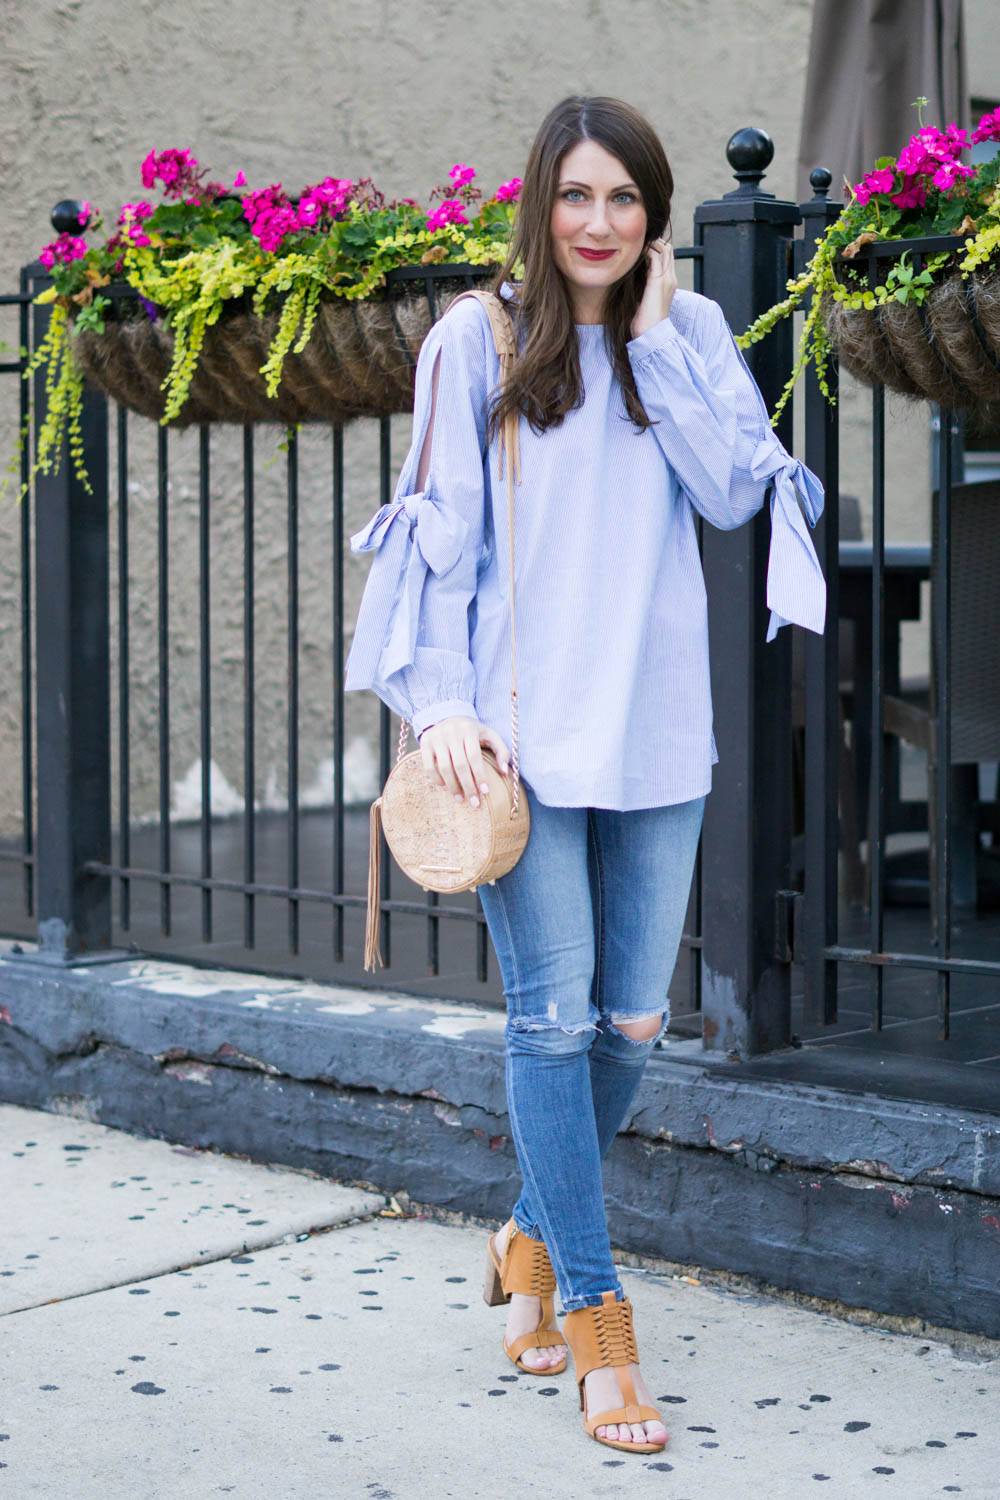 Transitioning Your Outfit From Summer to Fall